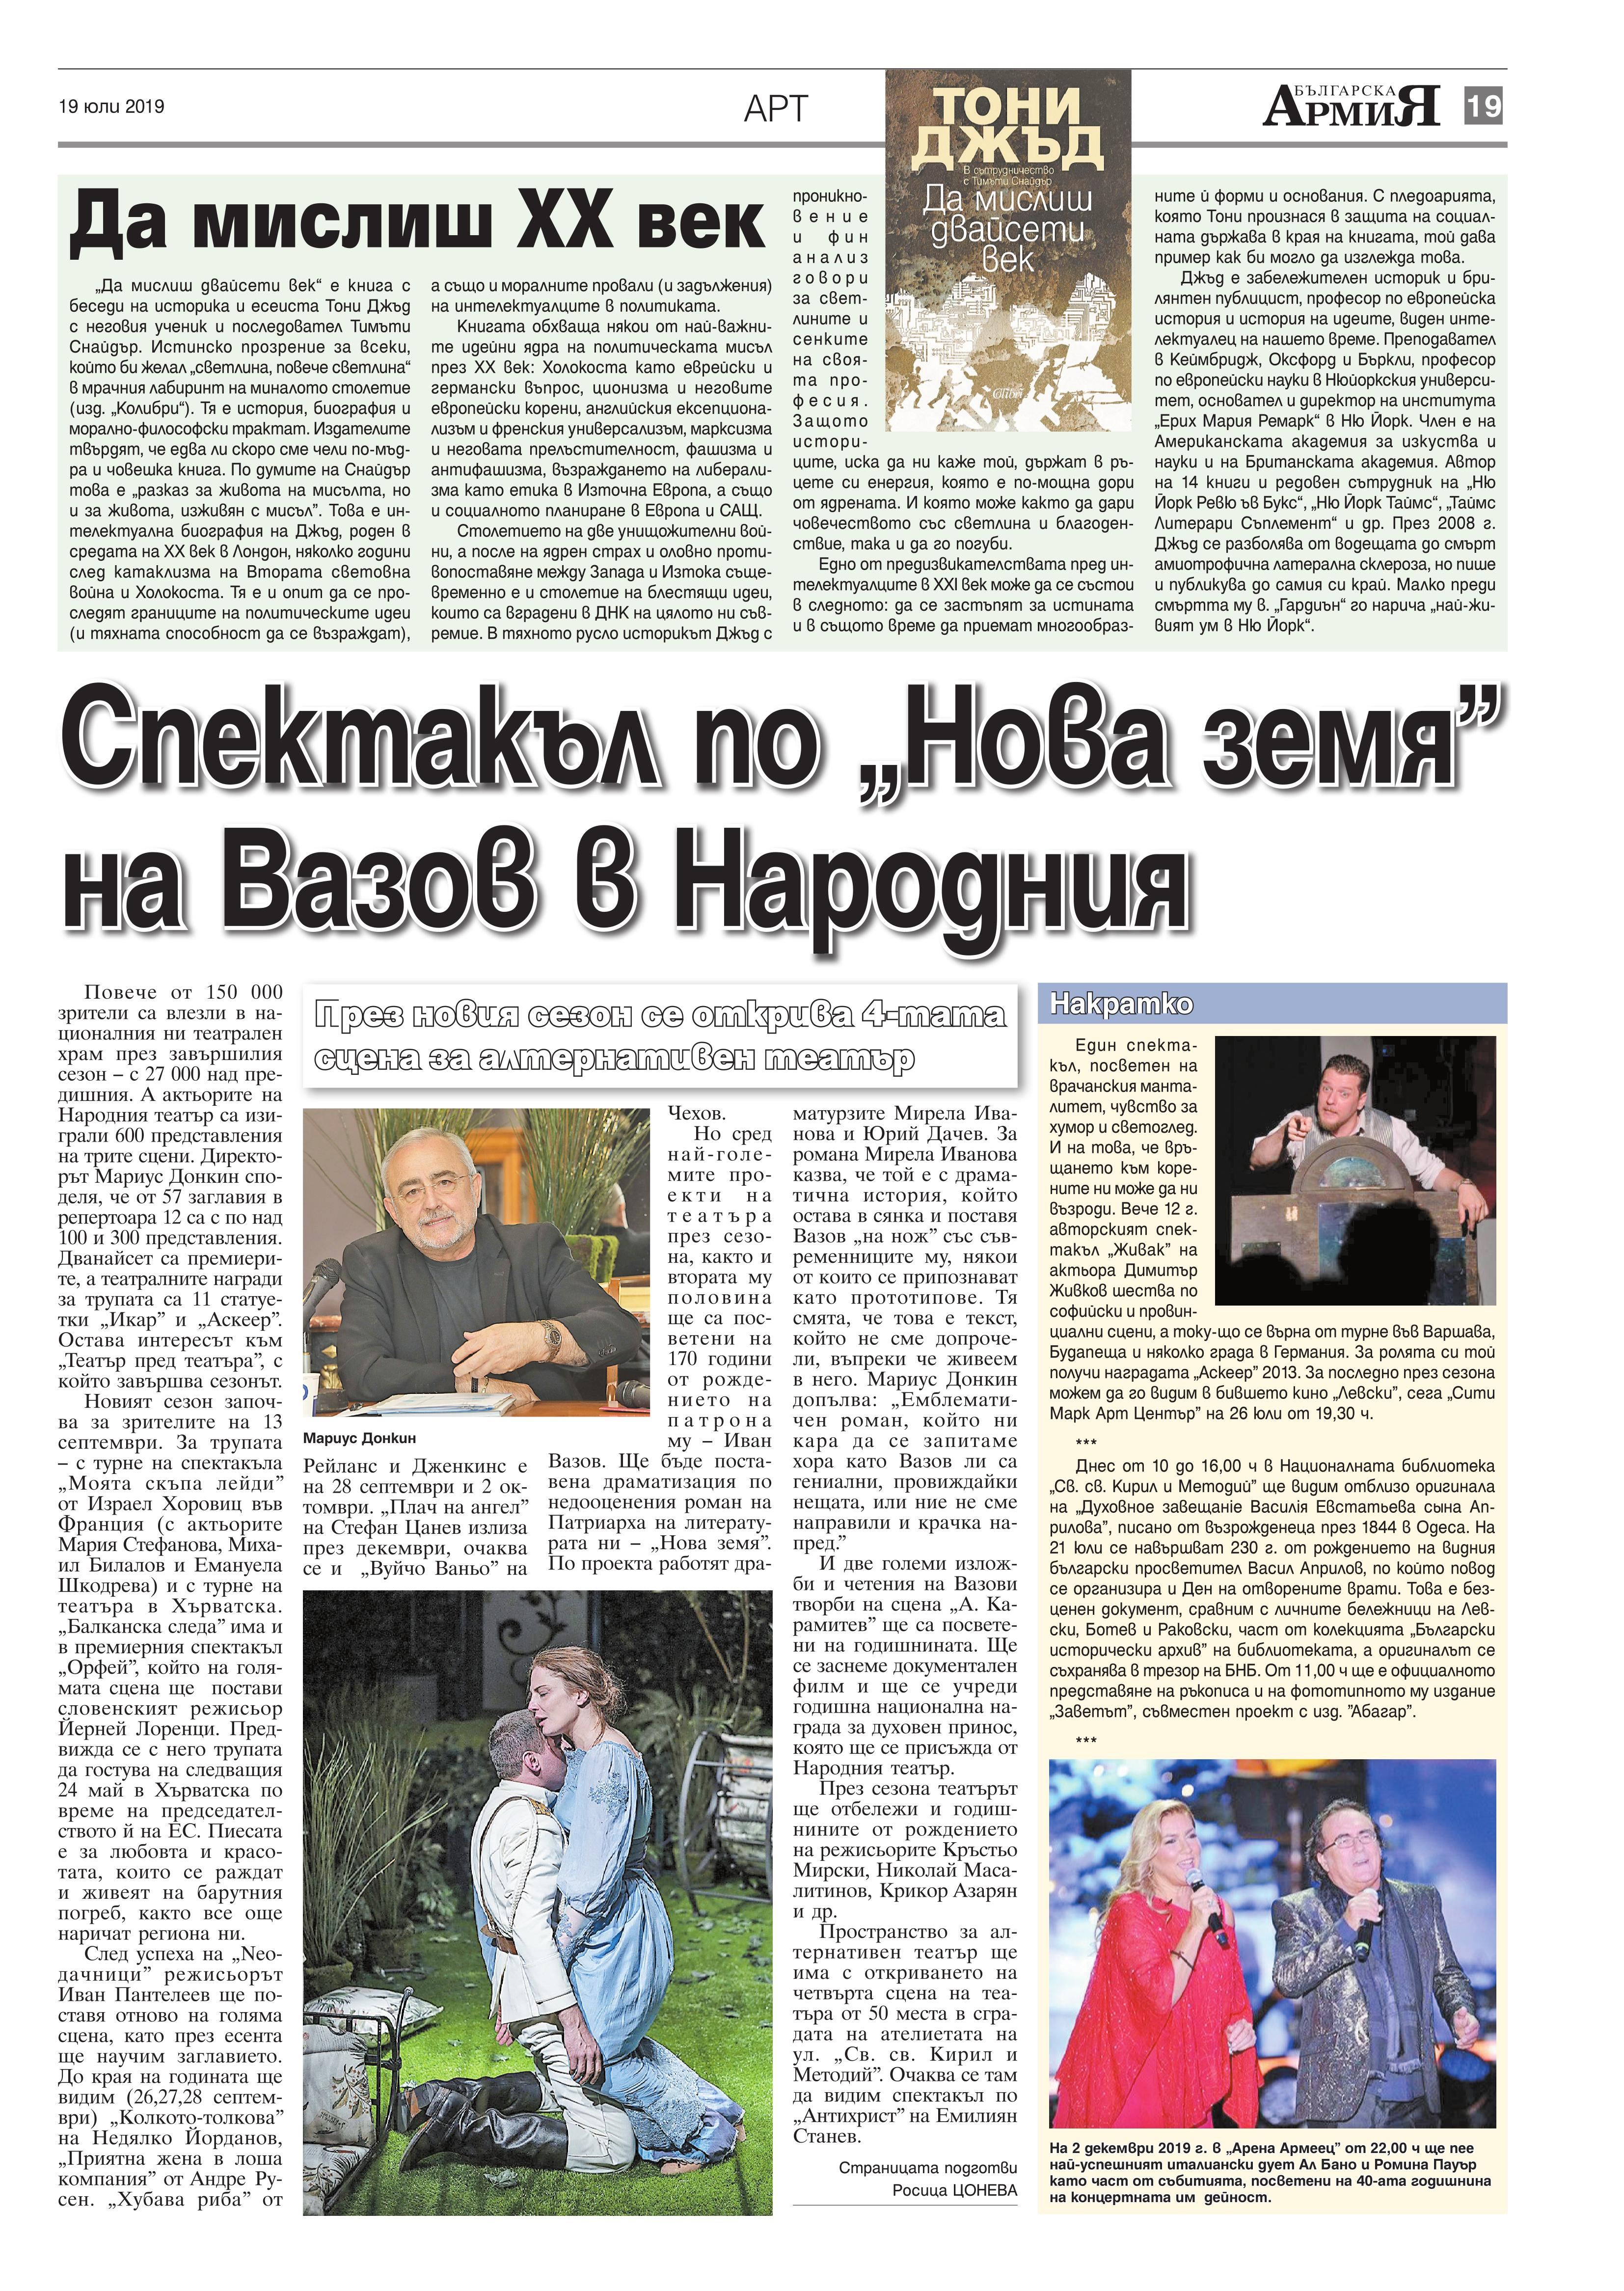 https://www.armymedia.bg/wp-content/uploads/2015/06/19.page1_-104.jpg